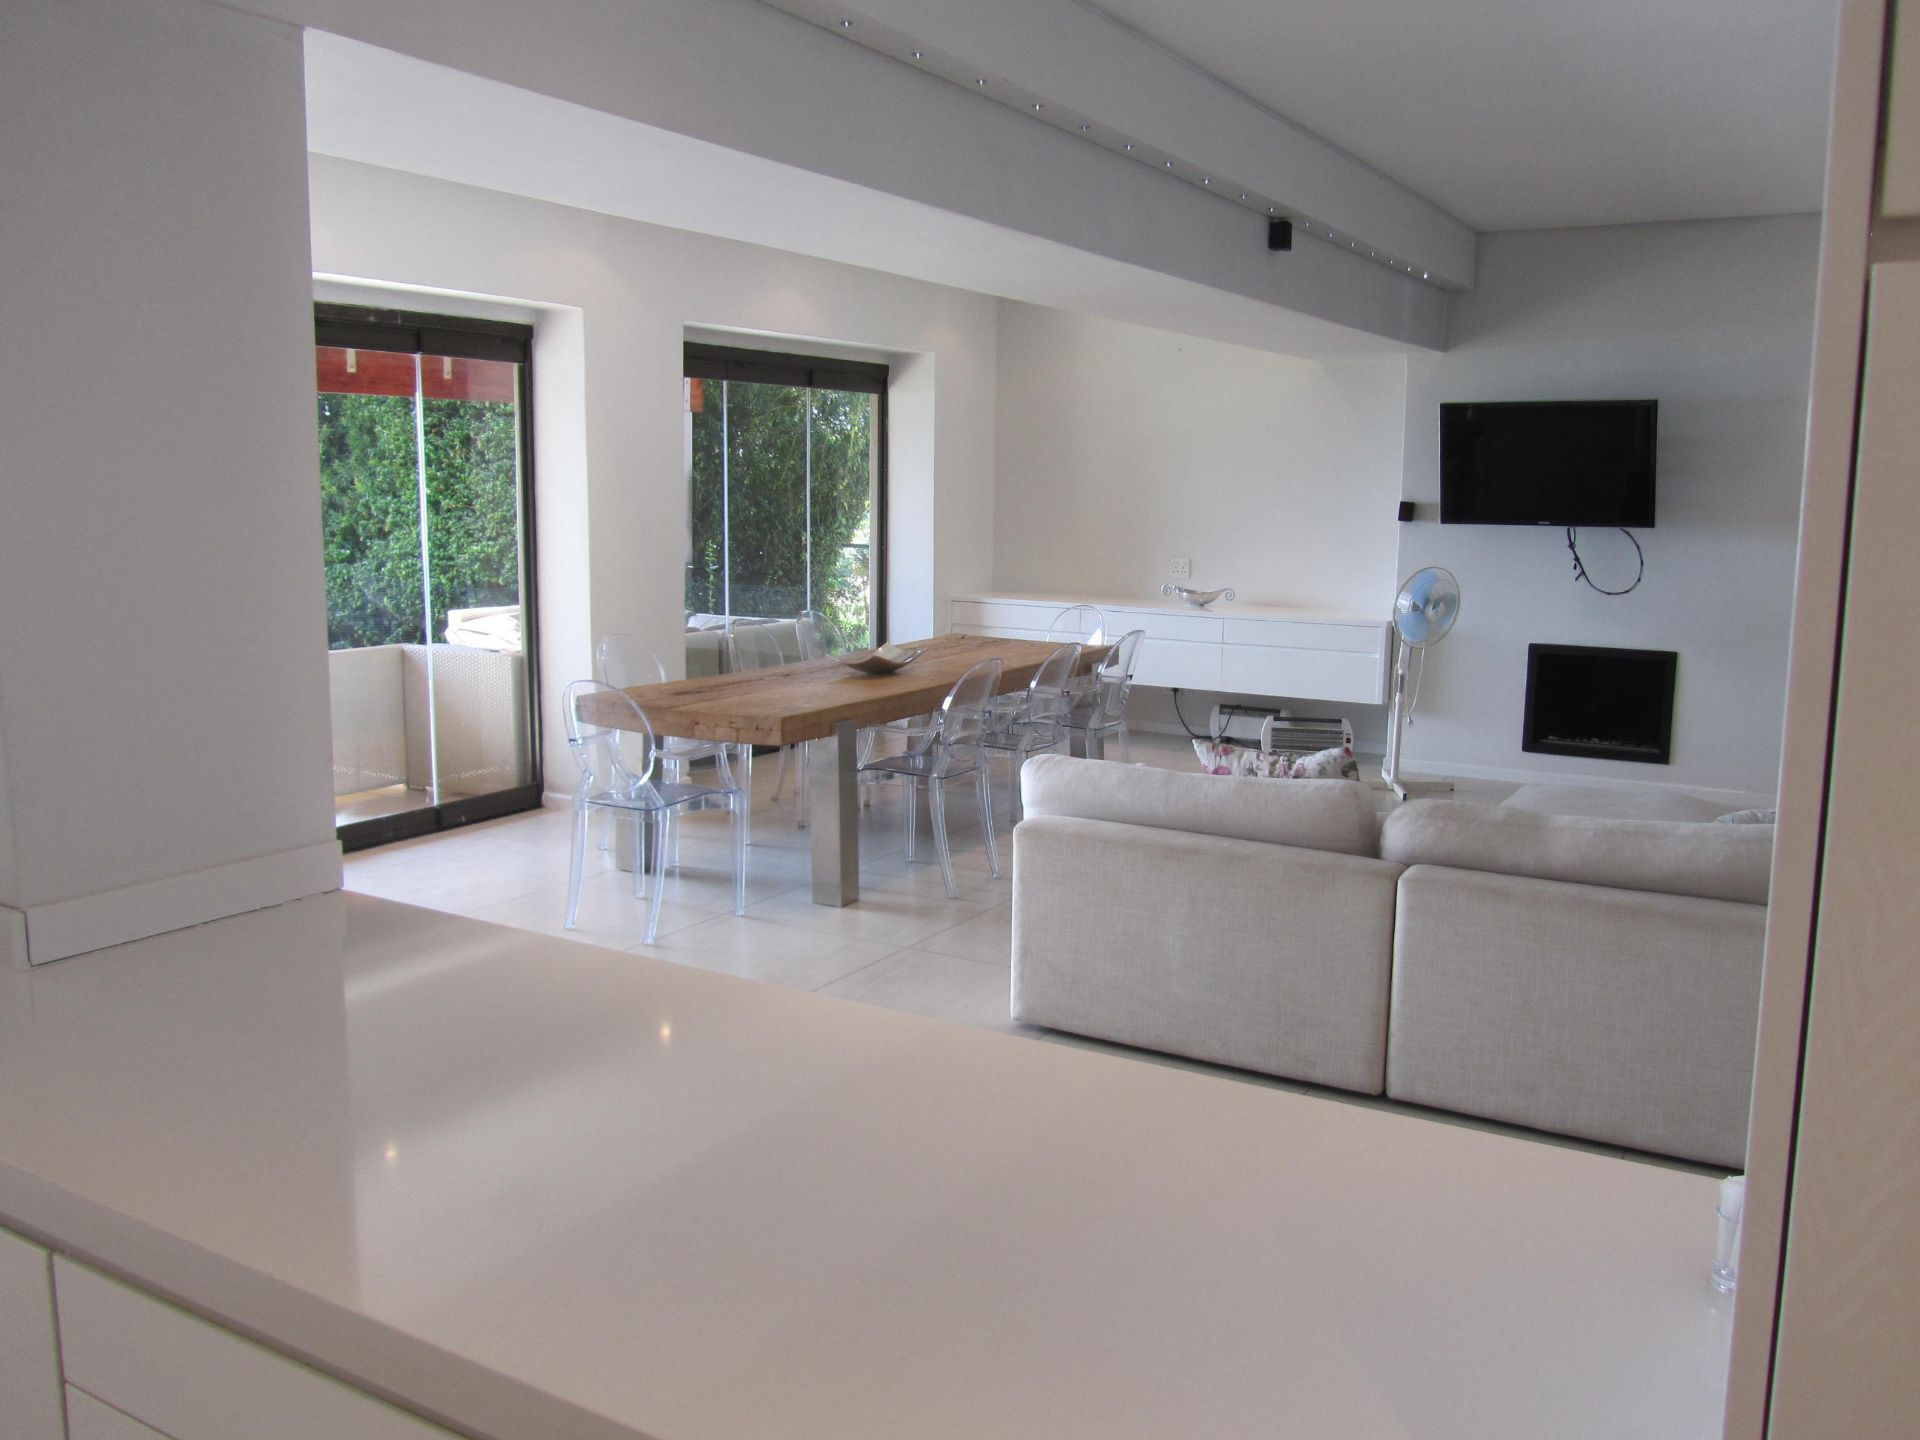 House in Eagles Landing - kitchen to lounge.JPG